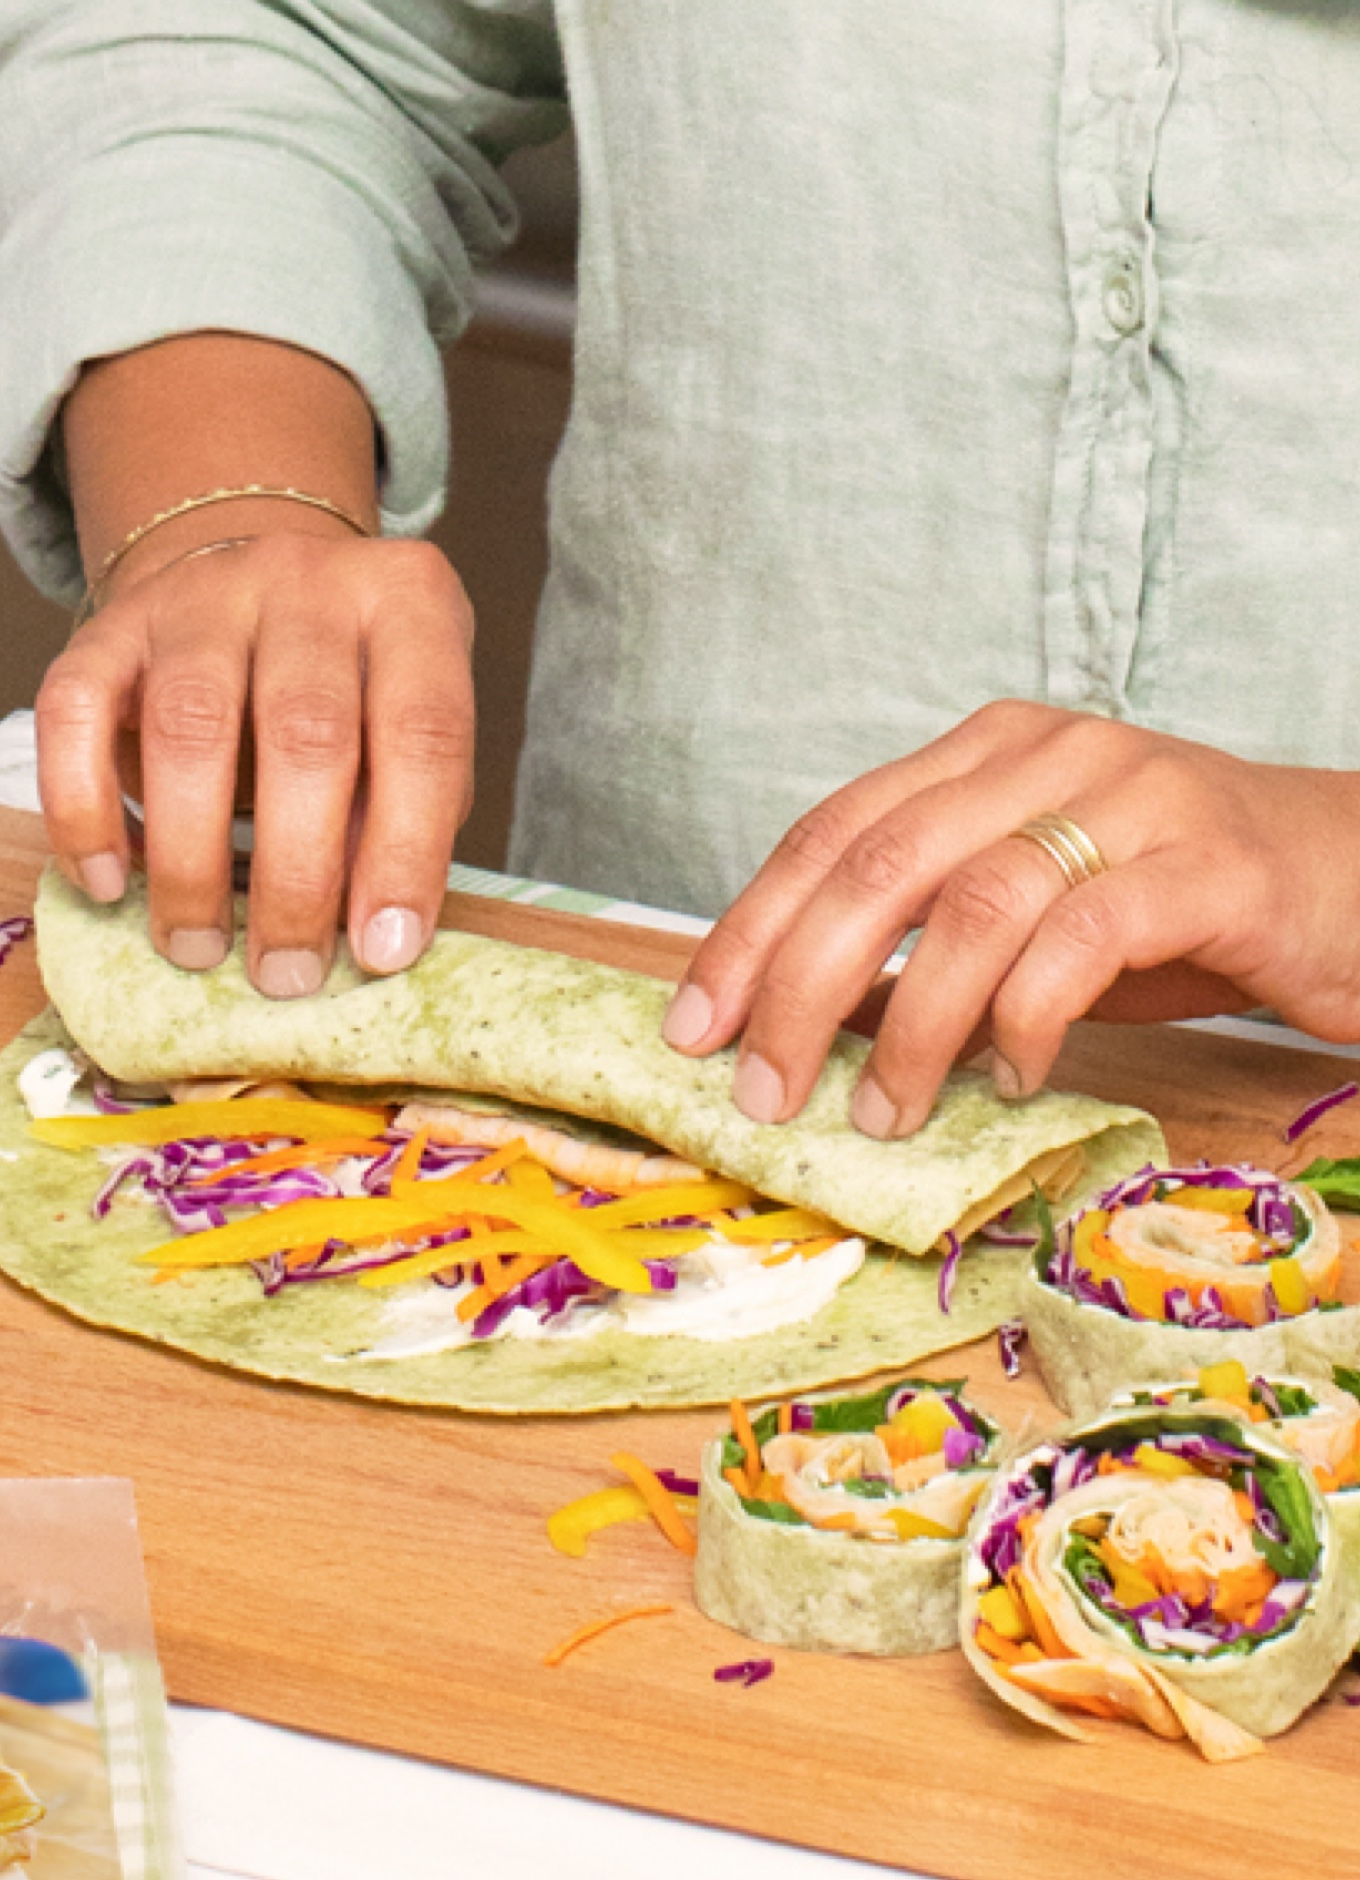 A person making colourful Rainbow Pinwheel Veggie Wraps with fresh vegetables and Halal Chicken Deli slices.